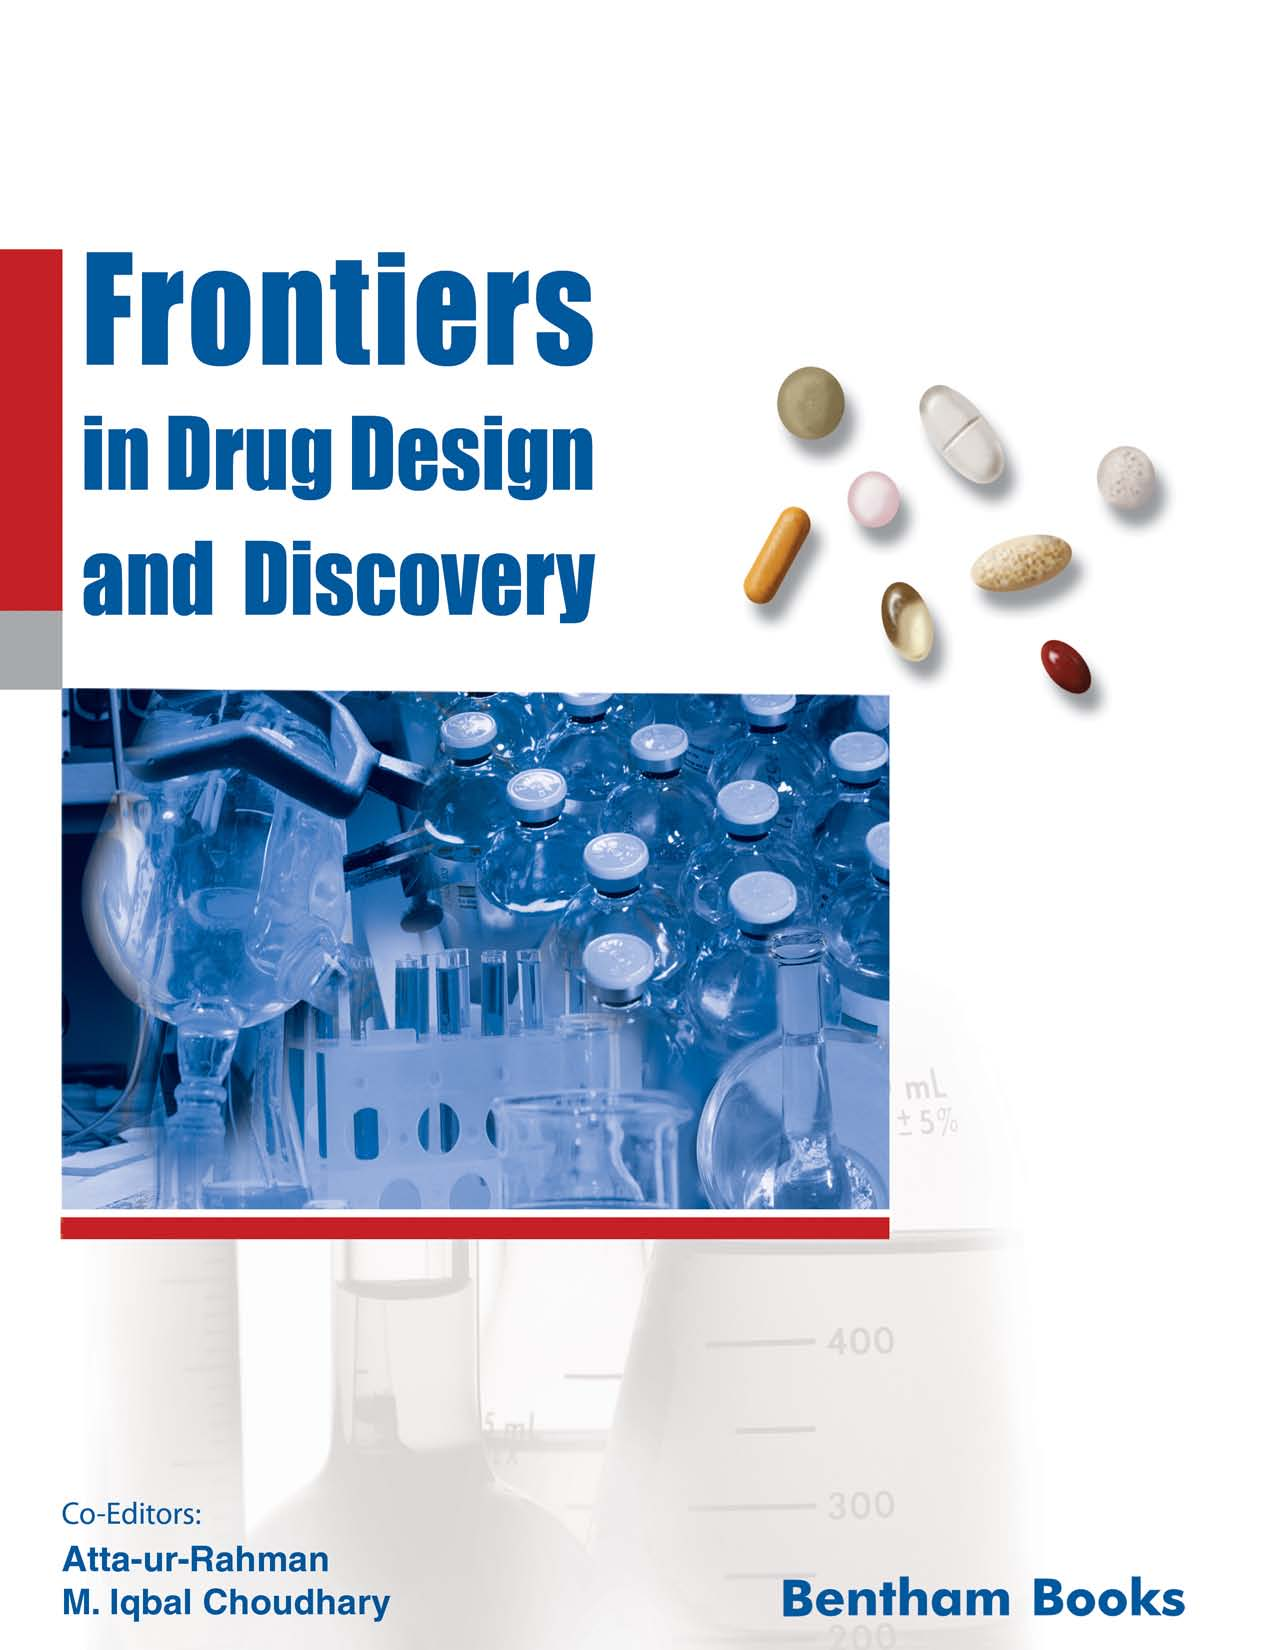 Frontiers in Drug Design and Discovery